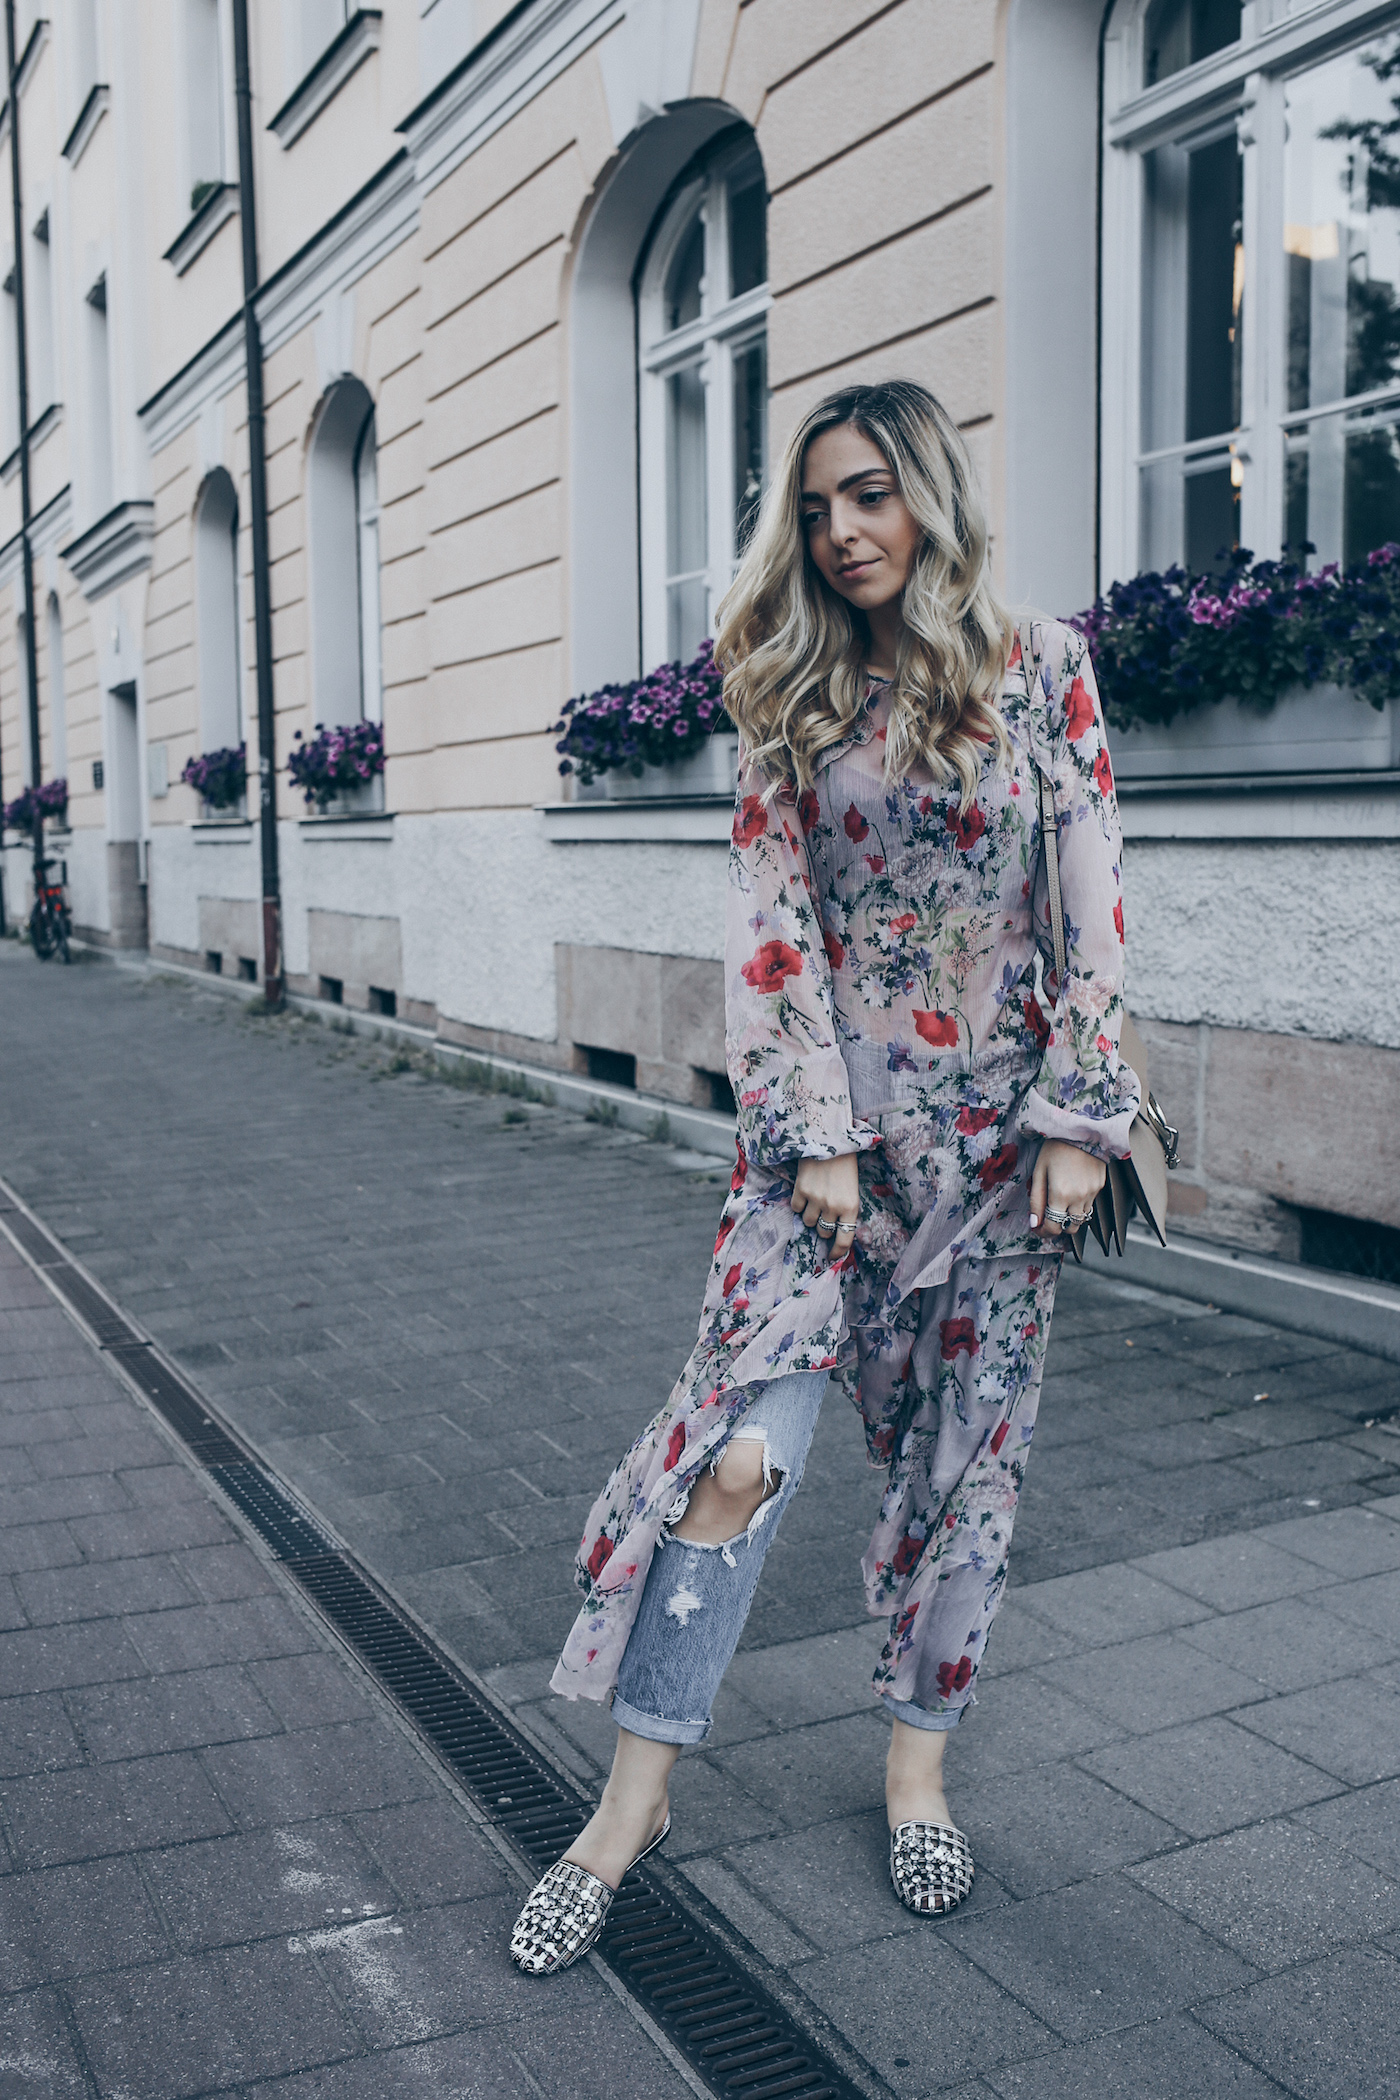 How-to-wear-layering-outfits-in-summer-street-style-fashion-blog-mode-blog -nuernberg-erlangen-Wantgetrepeat-01 fe1ef5ef2